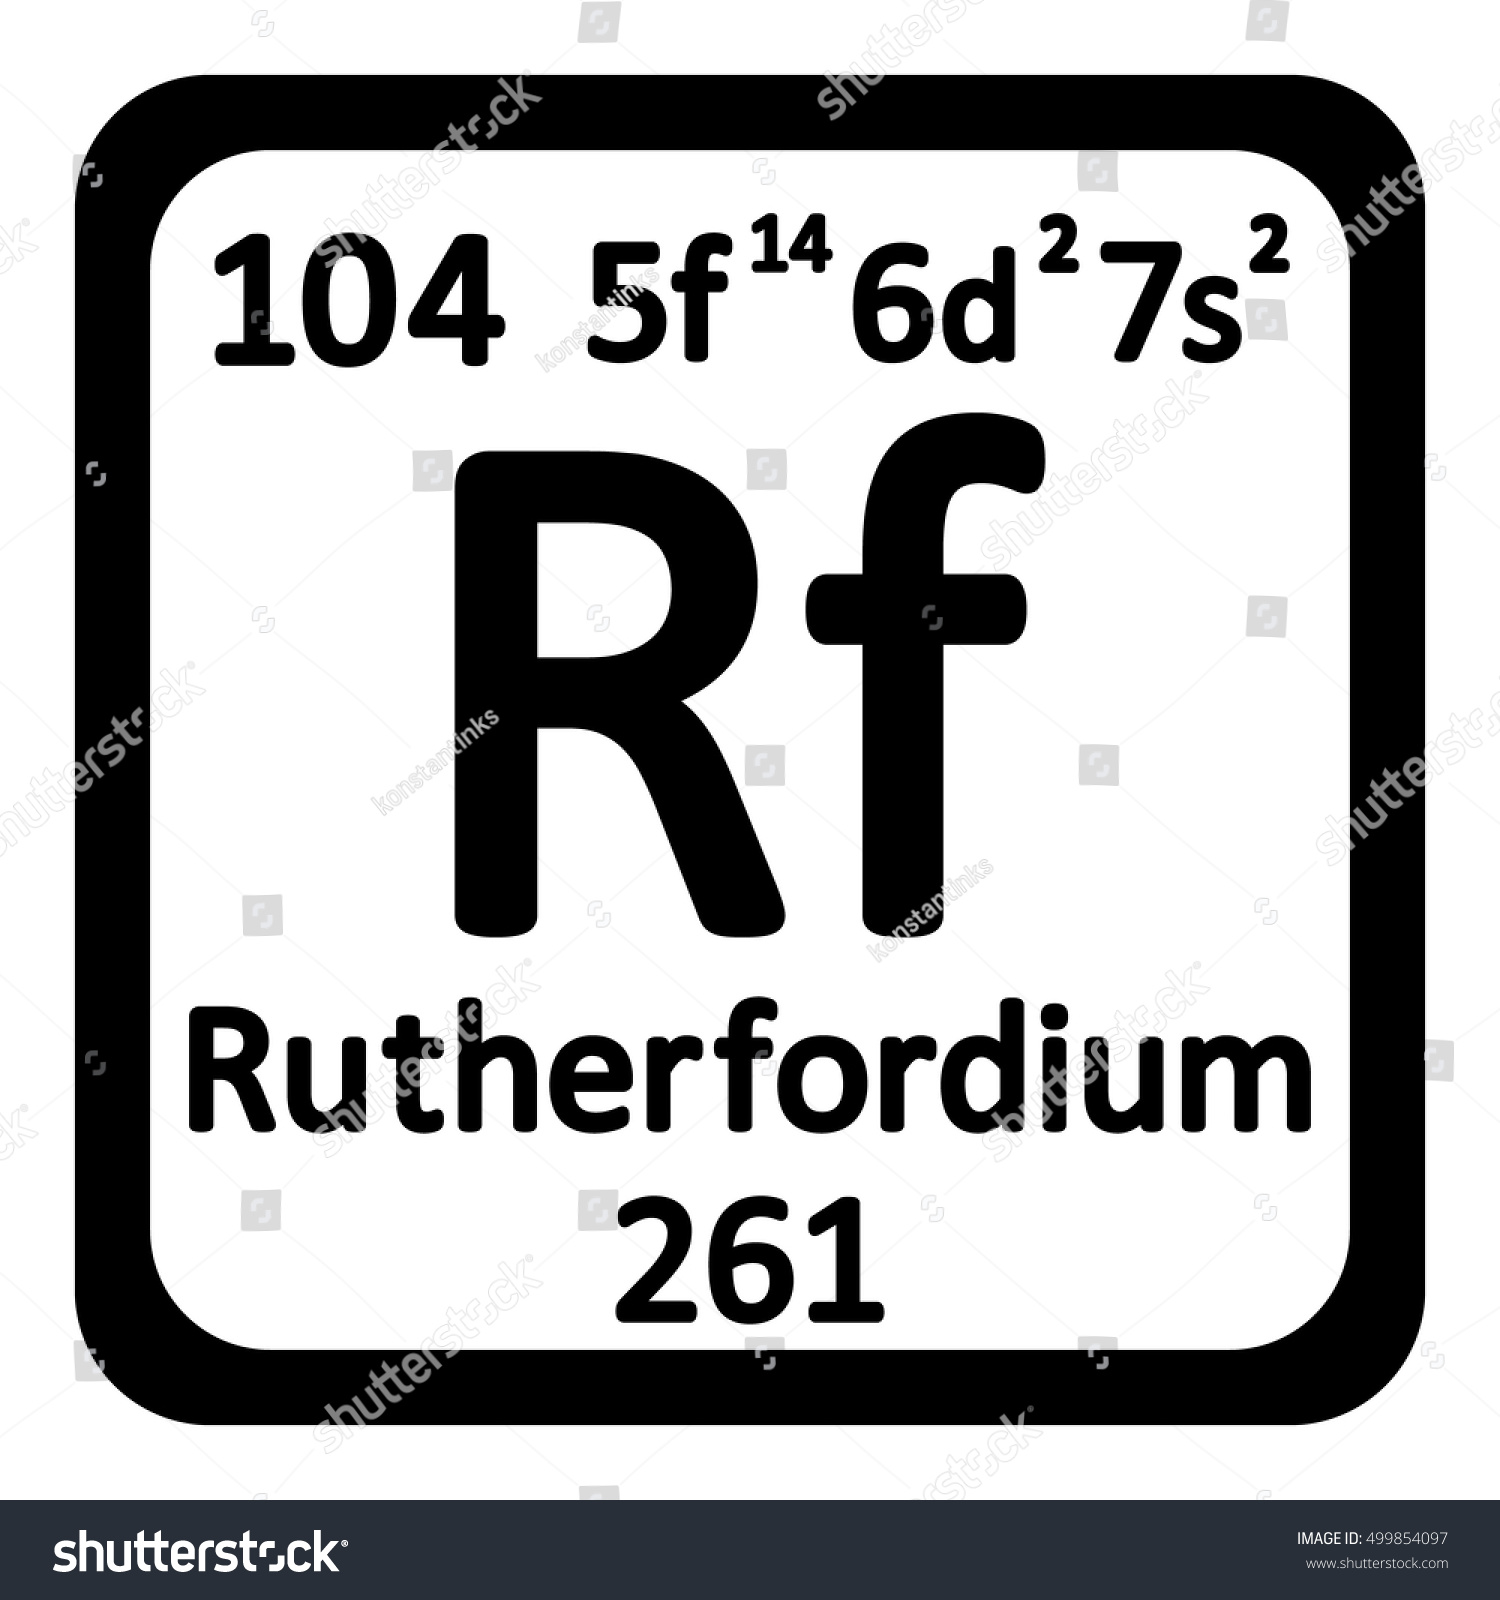 Periodic table element rutherfordium icon on stock vector periodic table element rutherfordium icon on white background vector illustration gamestrikefo Image collections